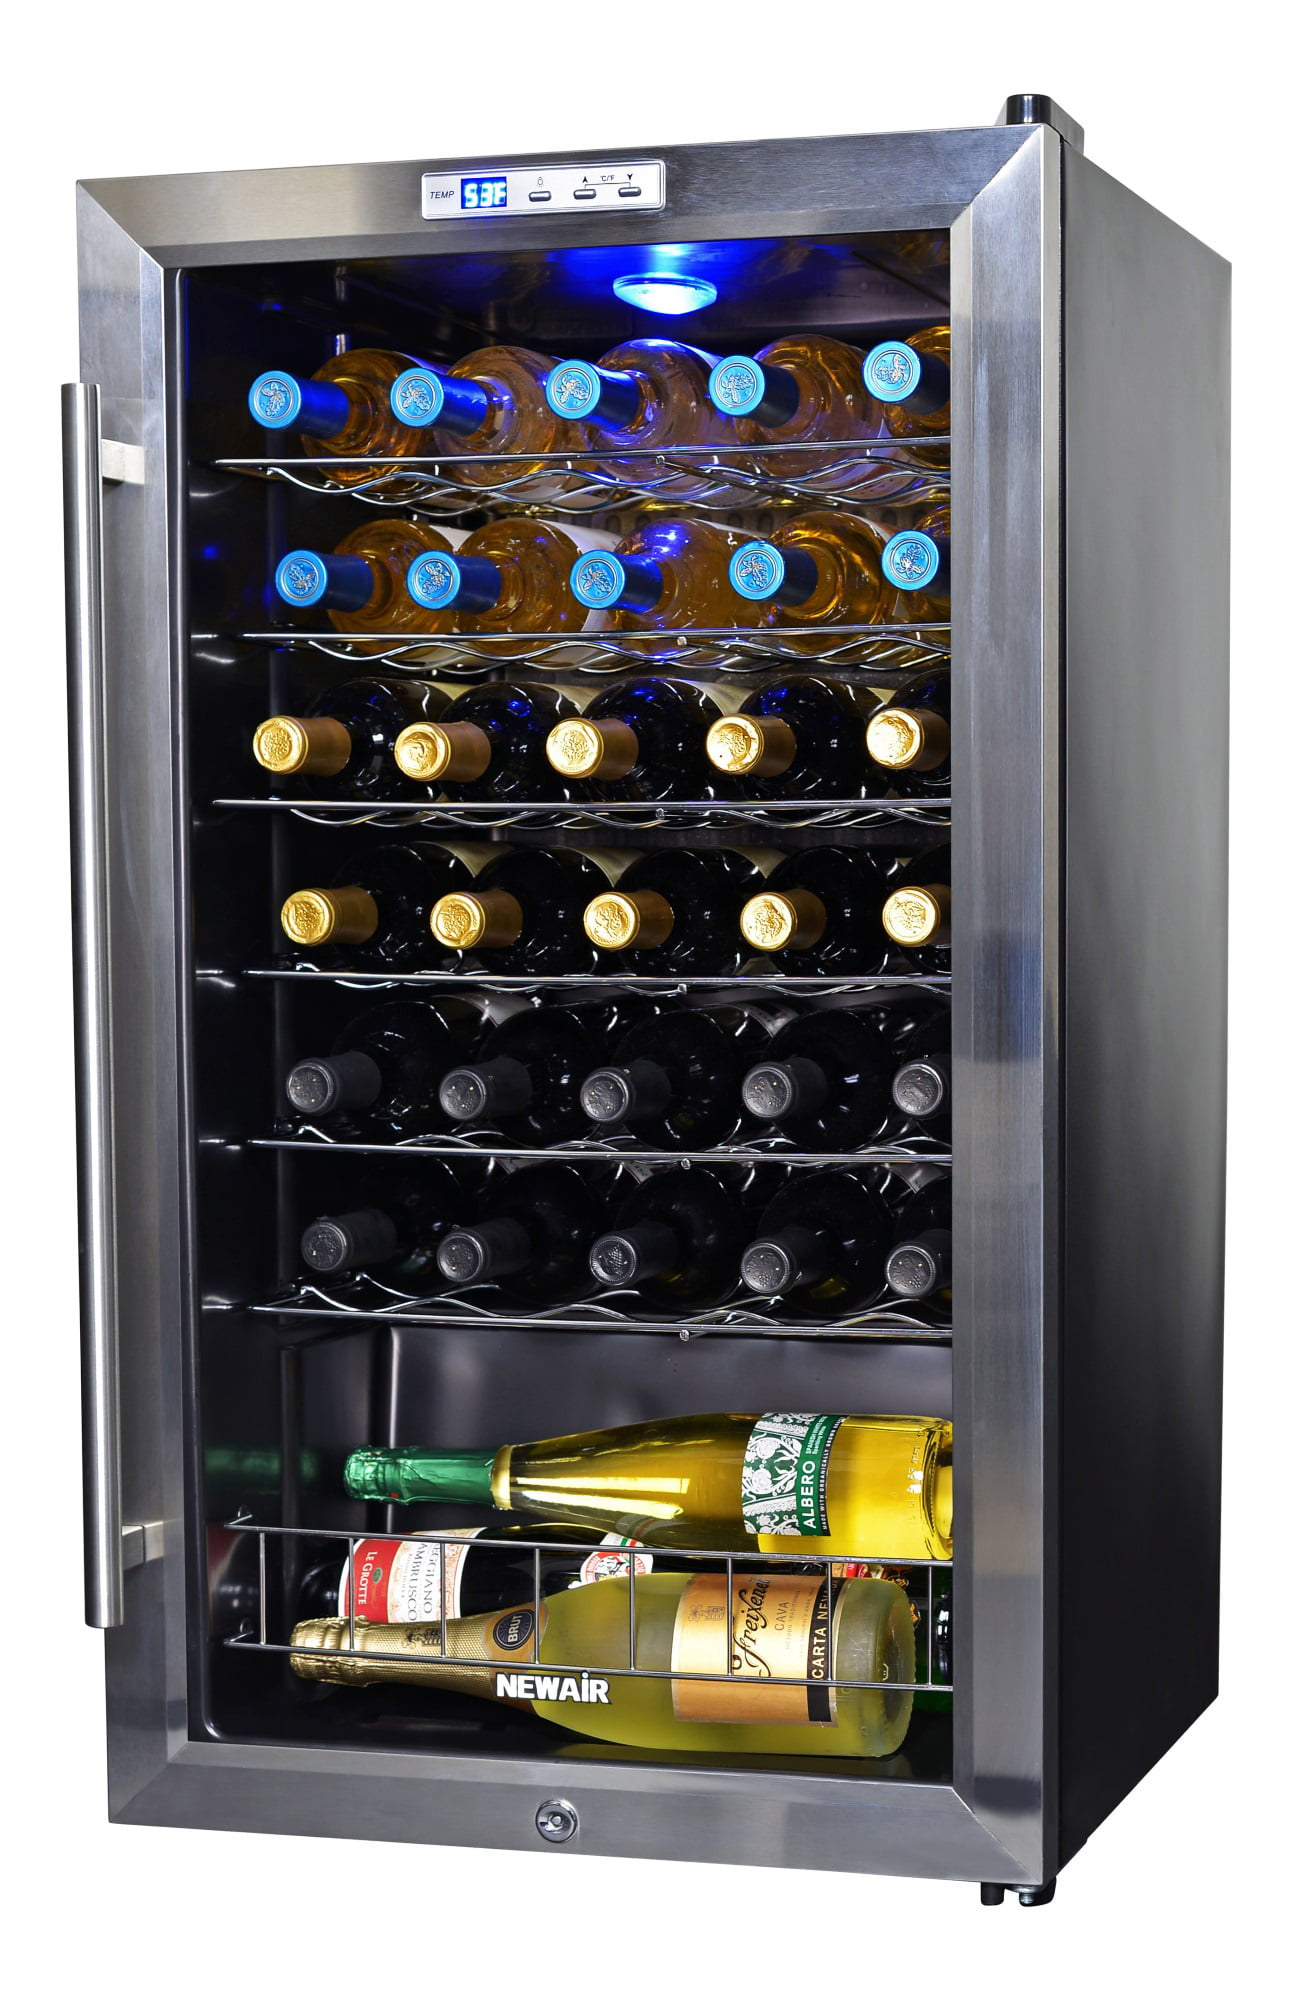 Newair Freestanding 33 Bottle Compressor Wine Fridge In Stainless Steel Adjustable Chrome Racks And Exterior Thermostat Walmart Com Walmart Com